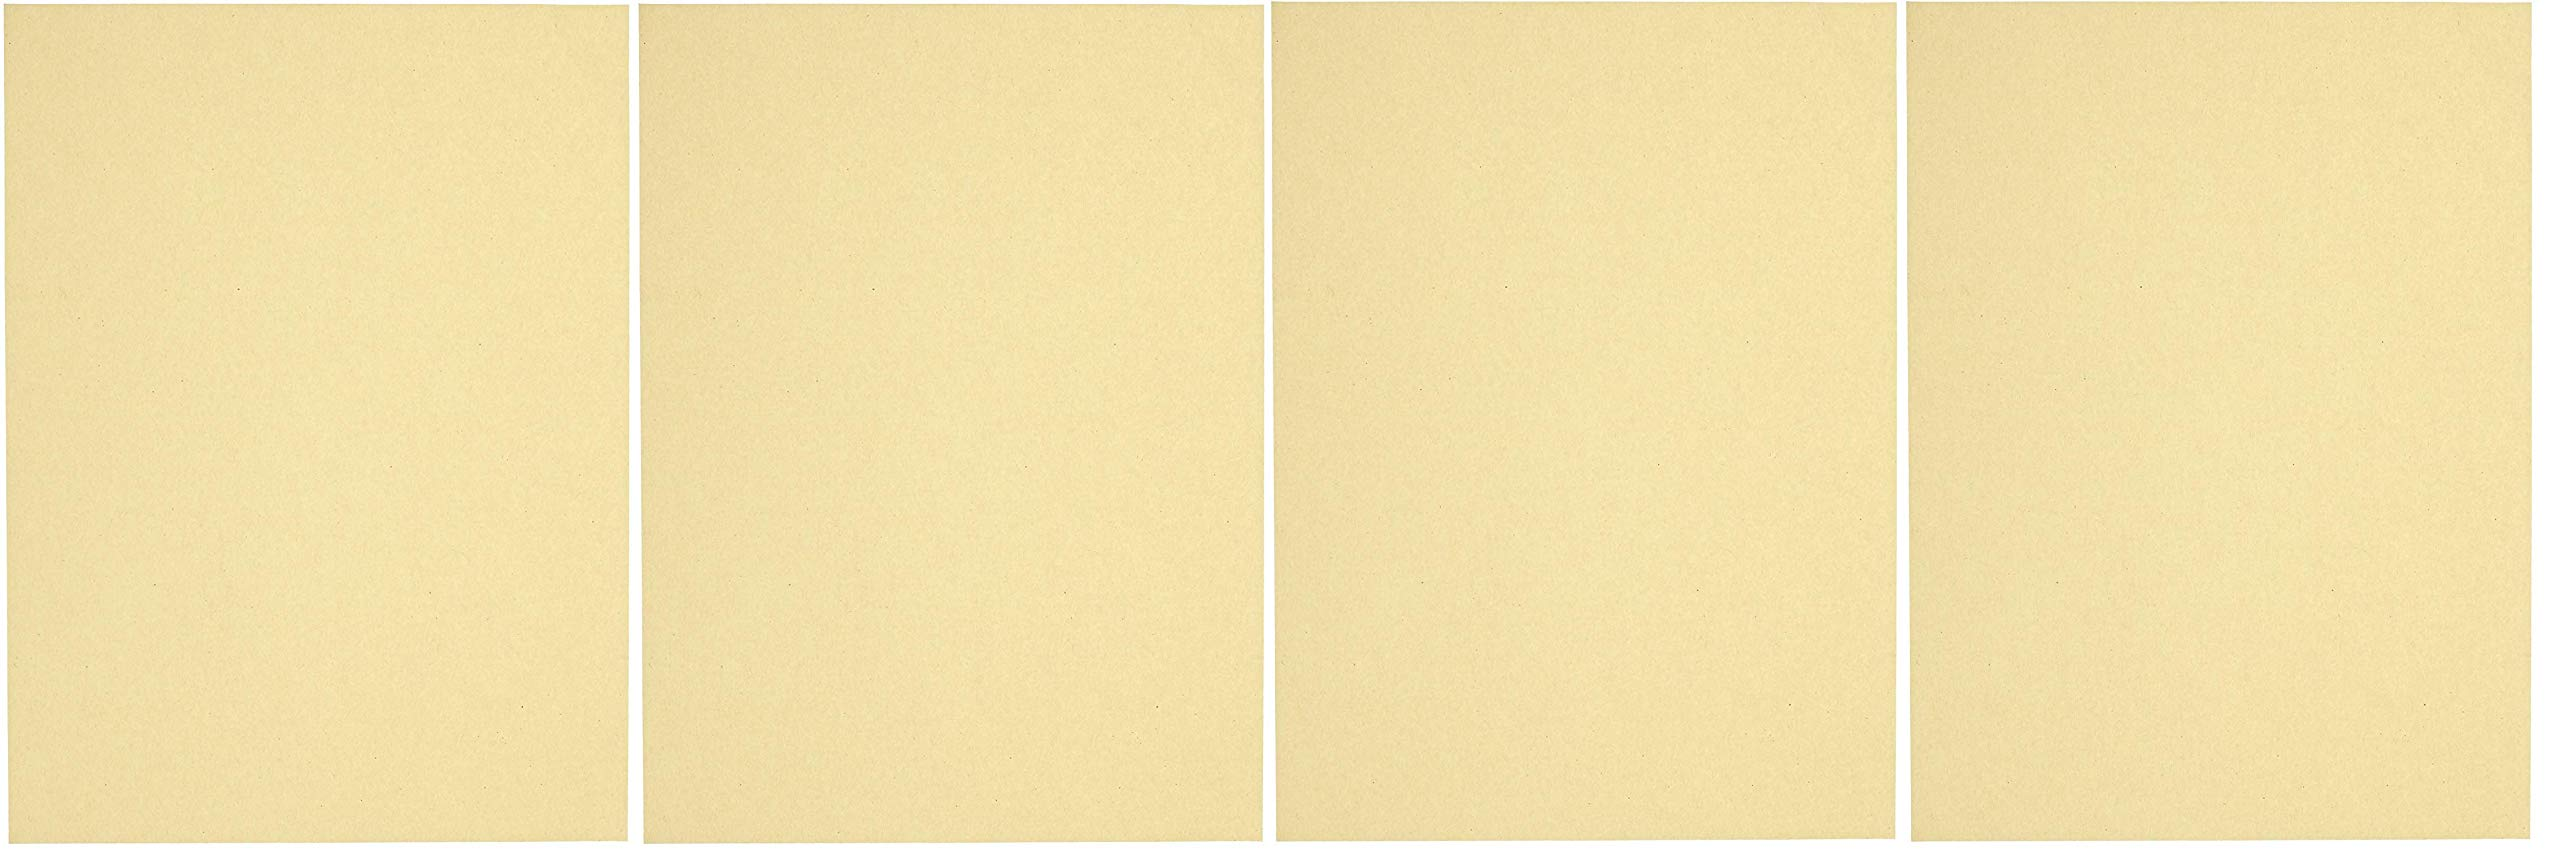 Sax Multi-Purpose Drawing Paper, 56 lbs, 9 x 12 Inches, Manila Cream, Pack of 500 (4-Pack)